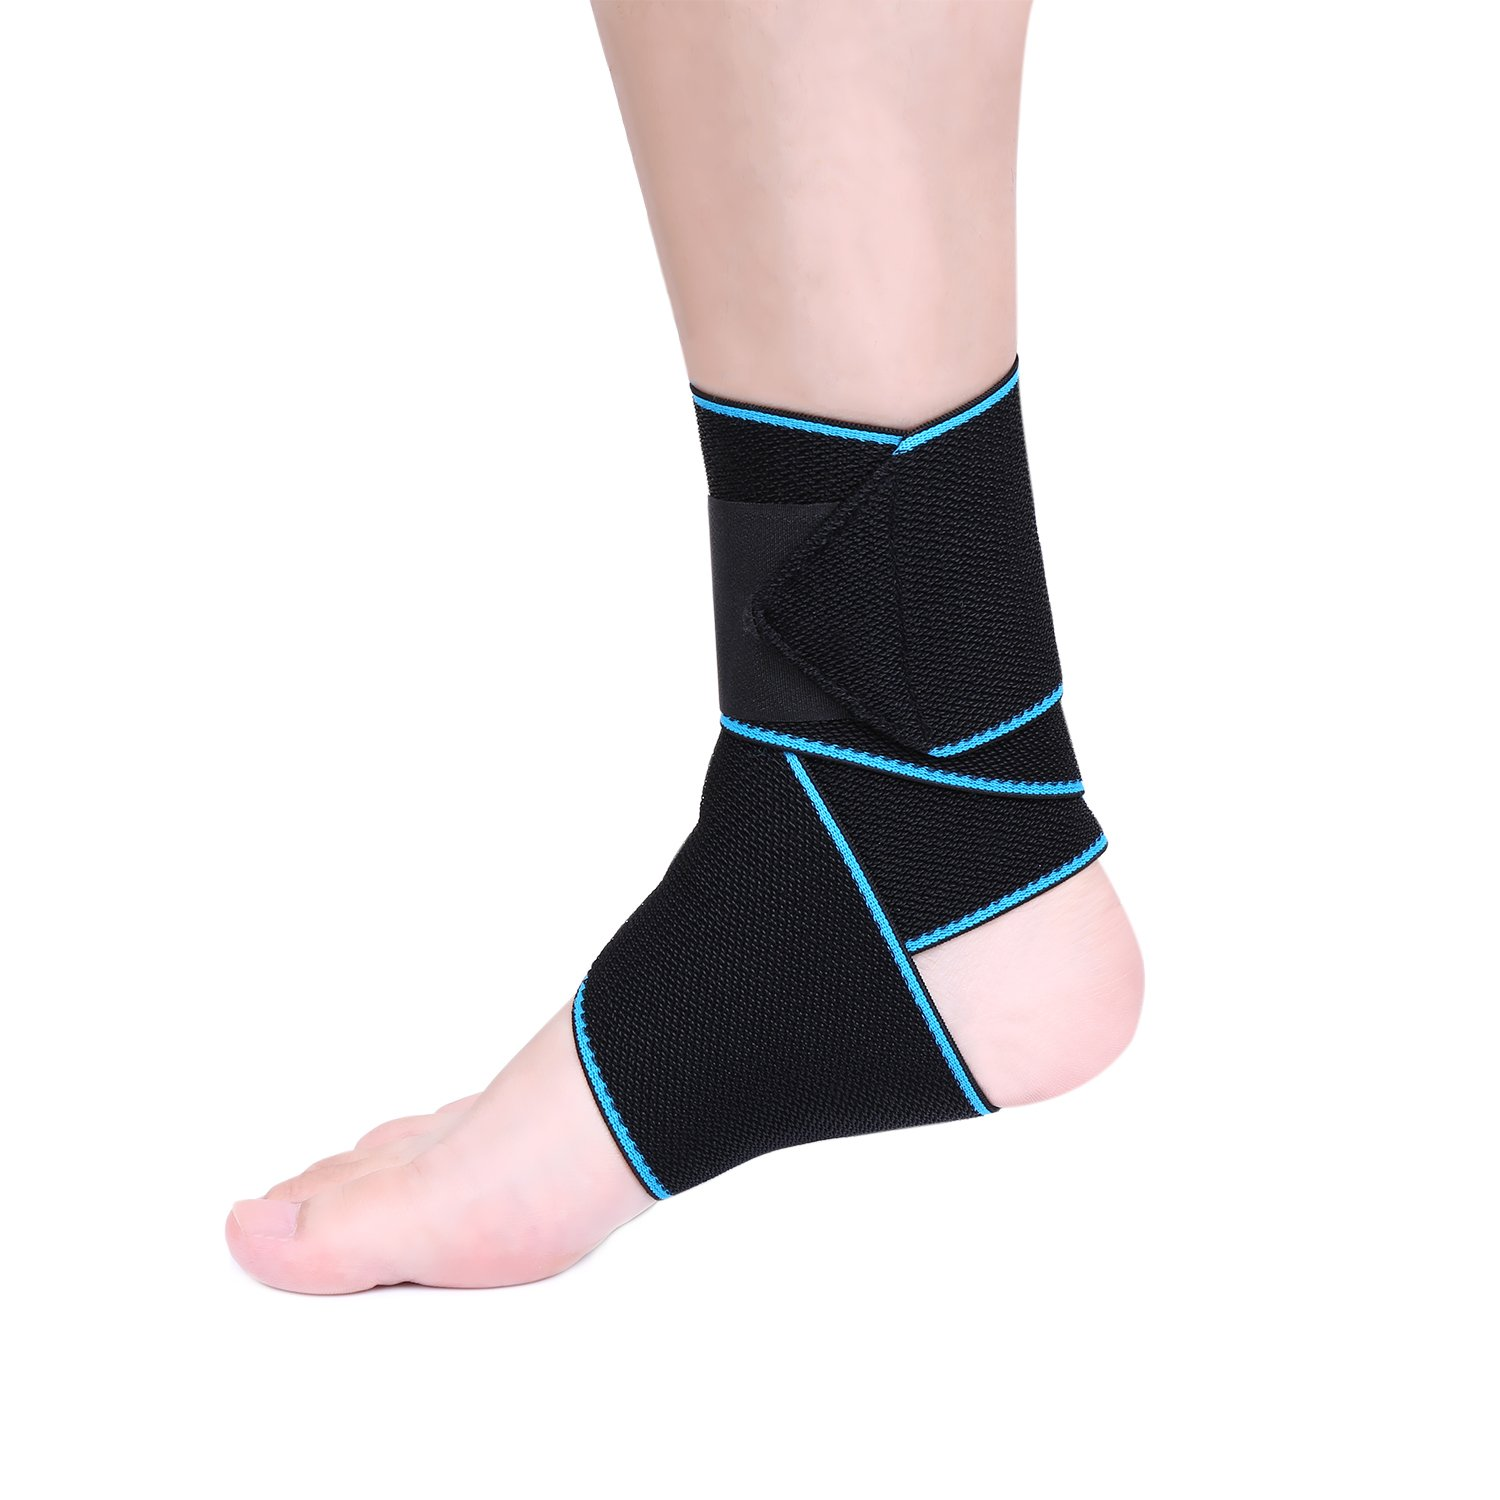 Breathable Ankle Support, eNilecor Adjustable Ankle Brace Elastic Foot Straps Support for Running, Football, Achilles Tendon Pain Support, Arthritic Pain Relief, Protection Against Reinjury (Blue)